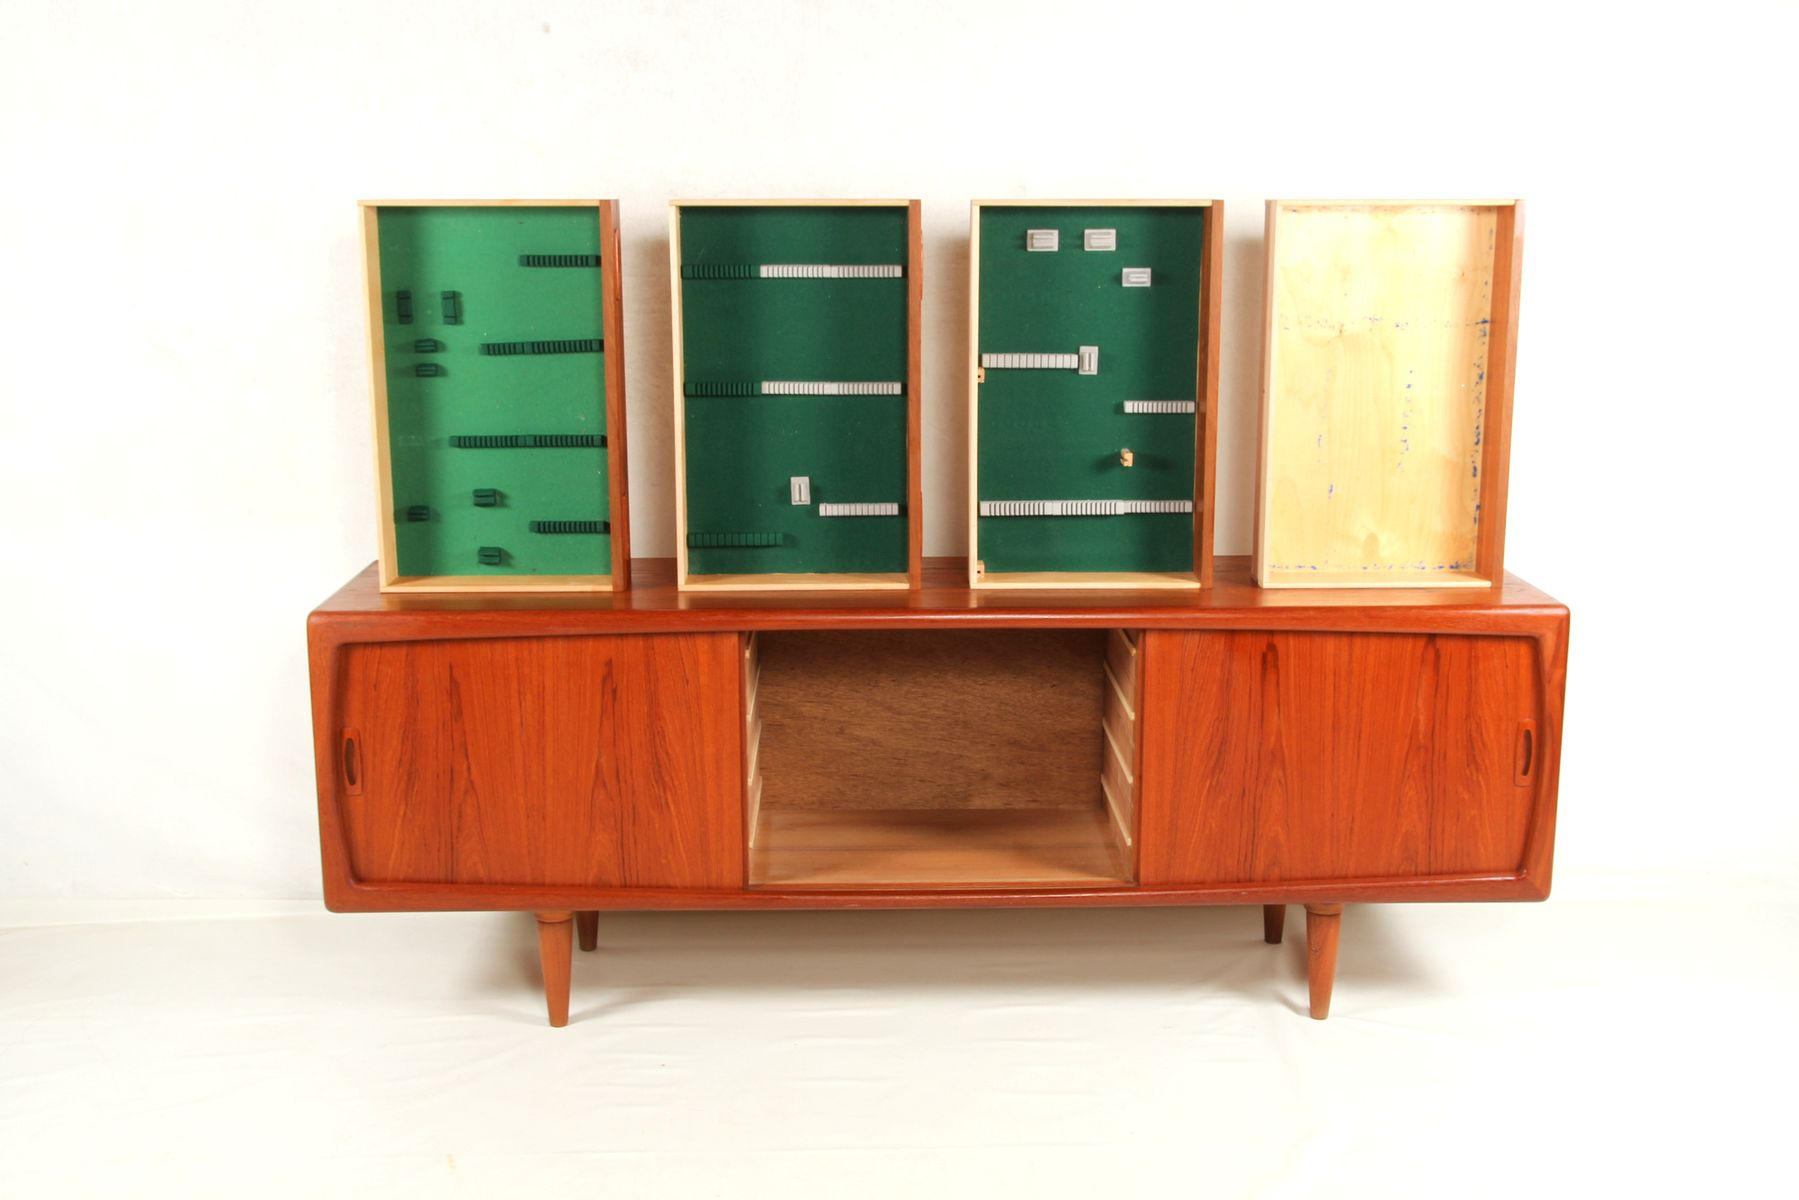 sideboard von h p hansen 1960er bei pamono kaufen. Black Bedroom Furniture Sets. Home Design Ideas